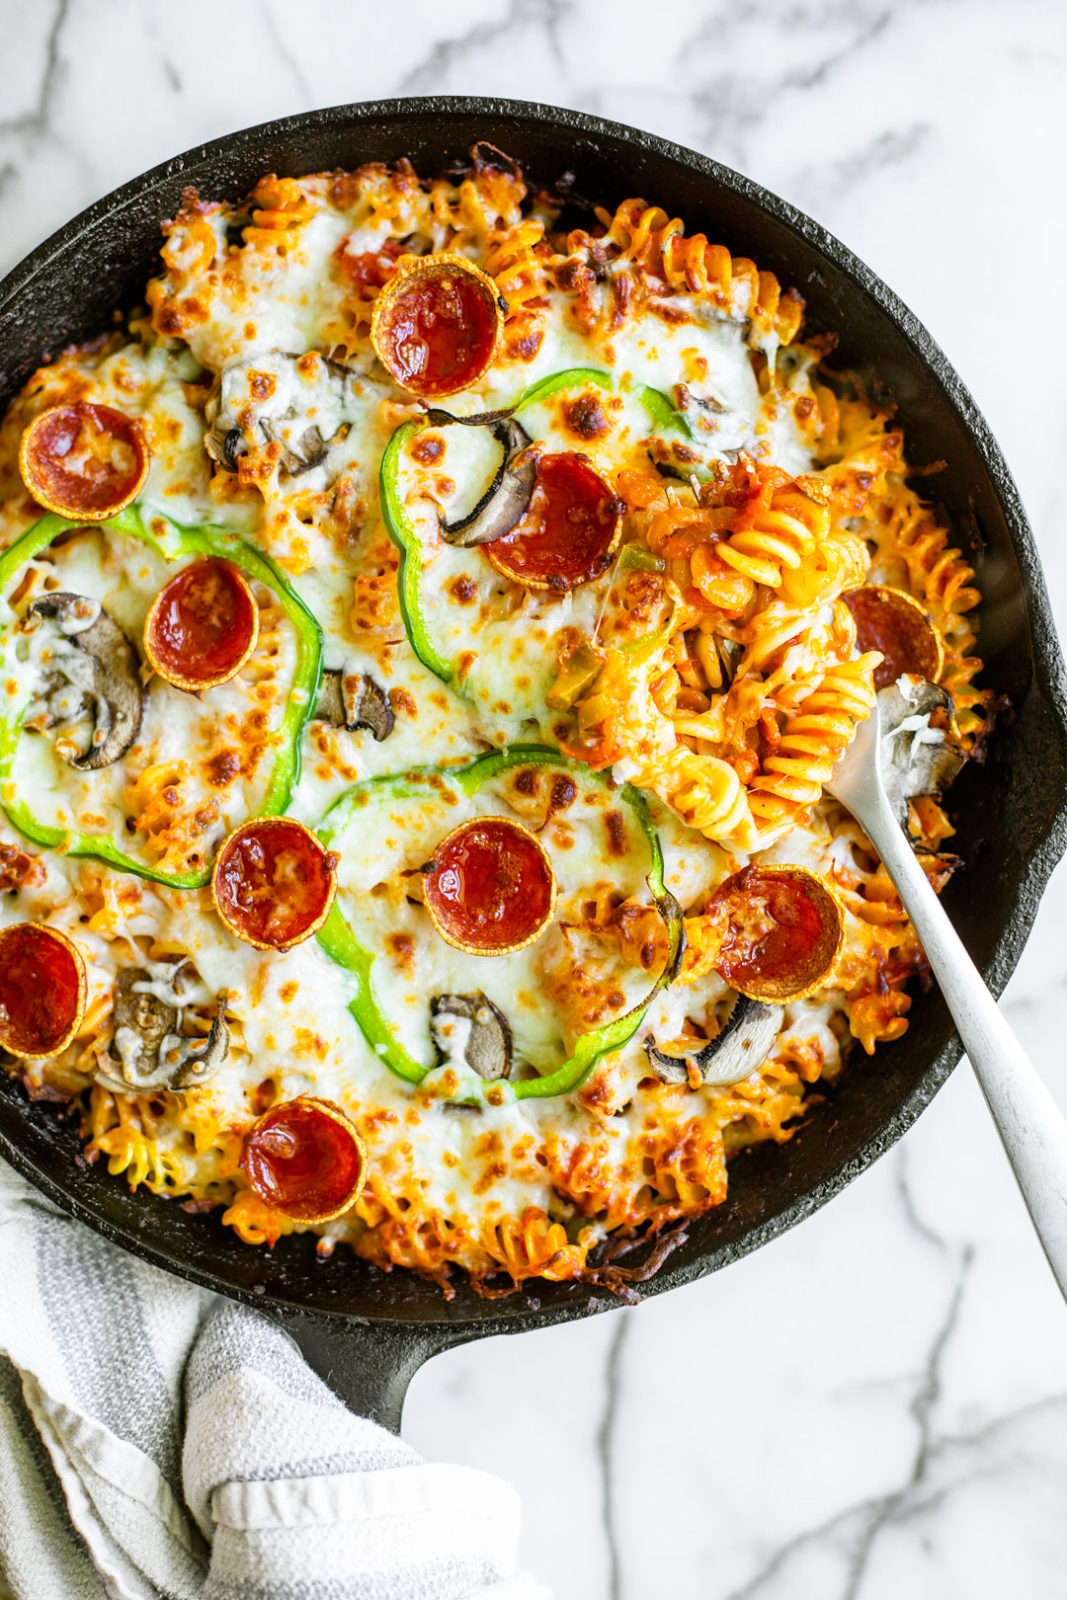 Skillet of cheesy pizza pasta with a fork pressed into rotini.